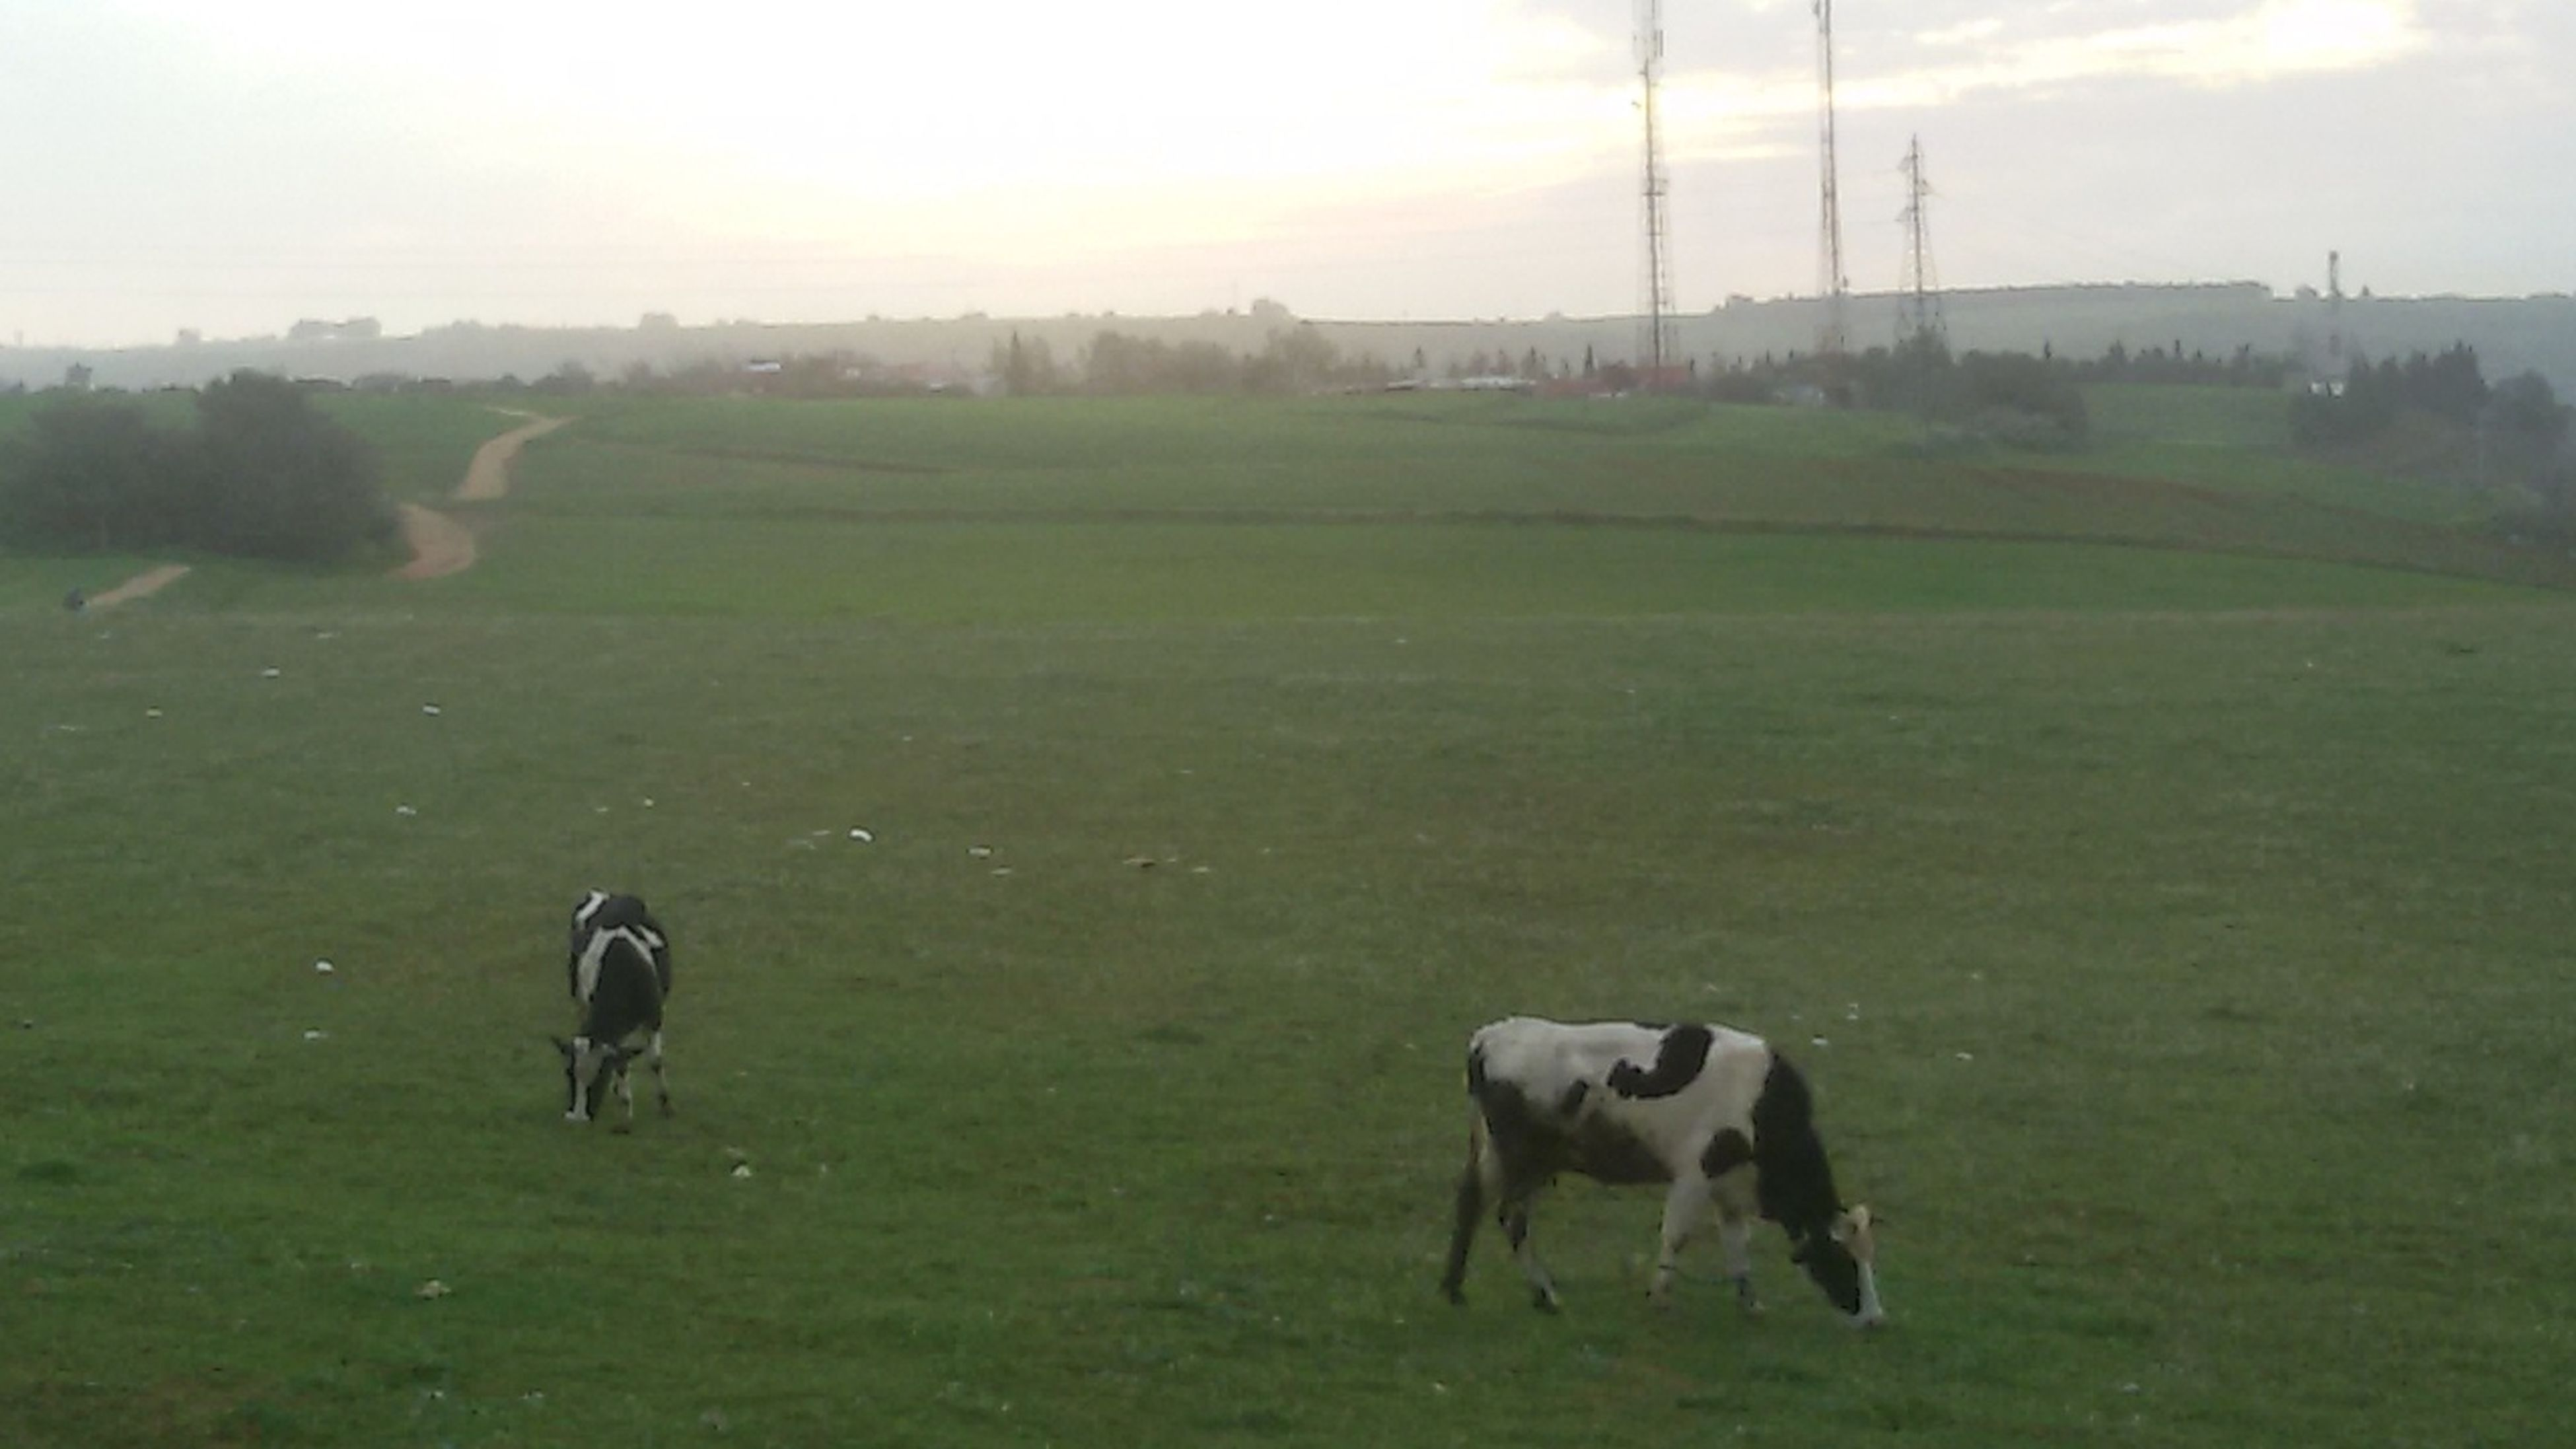 domestic animals, field, mammal, animal themes, grazing, landscape, green color, grass, livestock, nature, growth, pasture, no people, beauty in nature, outdoors, day, sky, togetherness